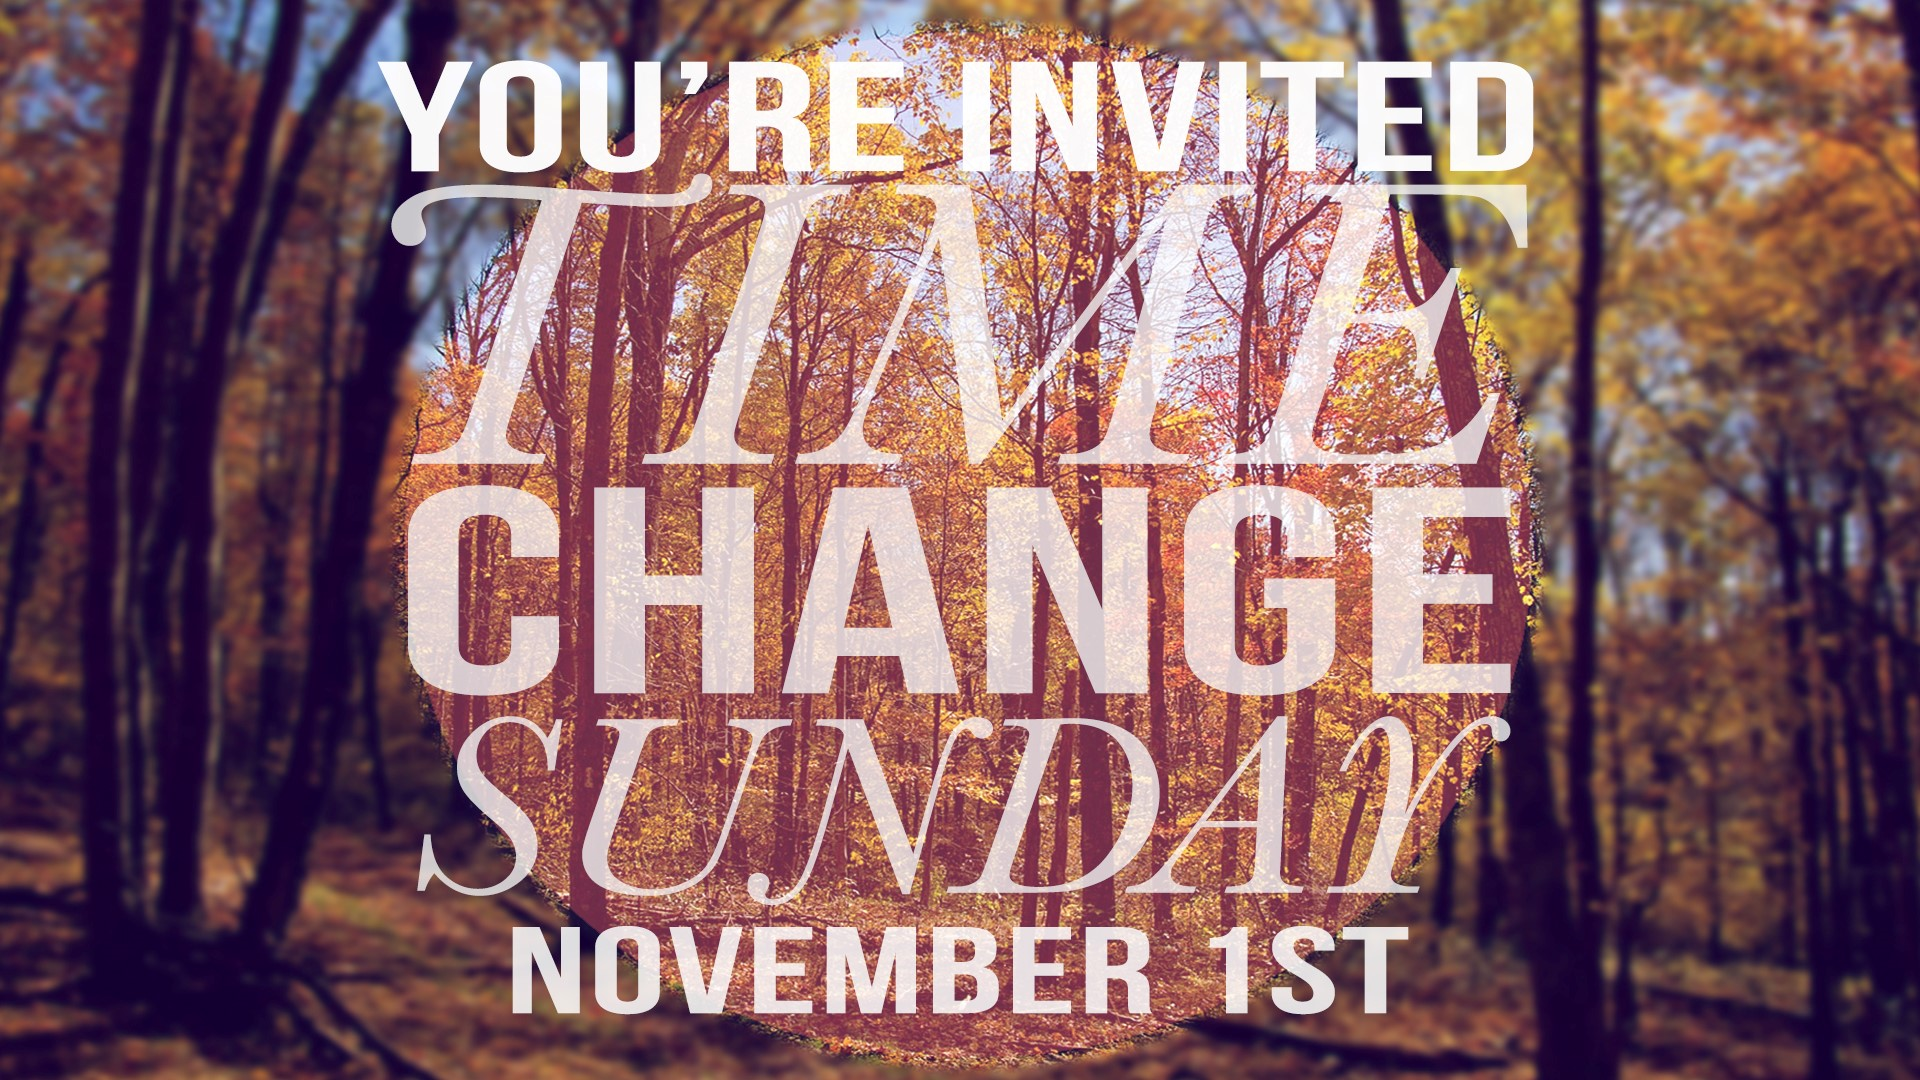 TIME CHANGE SUNDAY - November 1st - fall Back One Hour!  Join us November 1st for TIME CHANGE Sunday! Bring the whole family and join us for gourmet hor dogs, kettle corn, bounce houses and more for all three services!